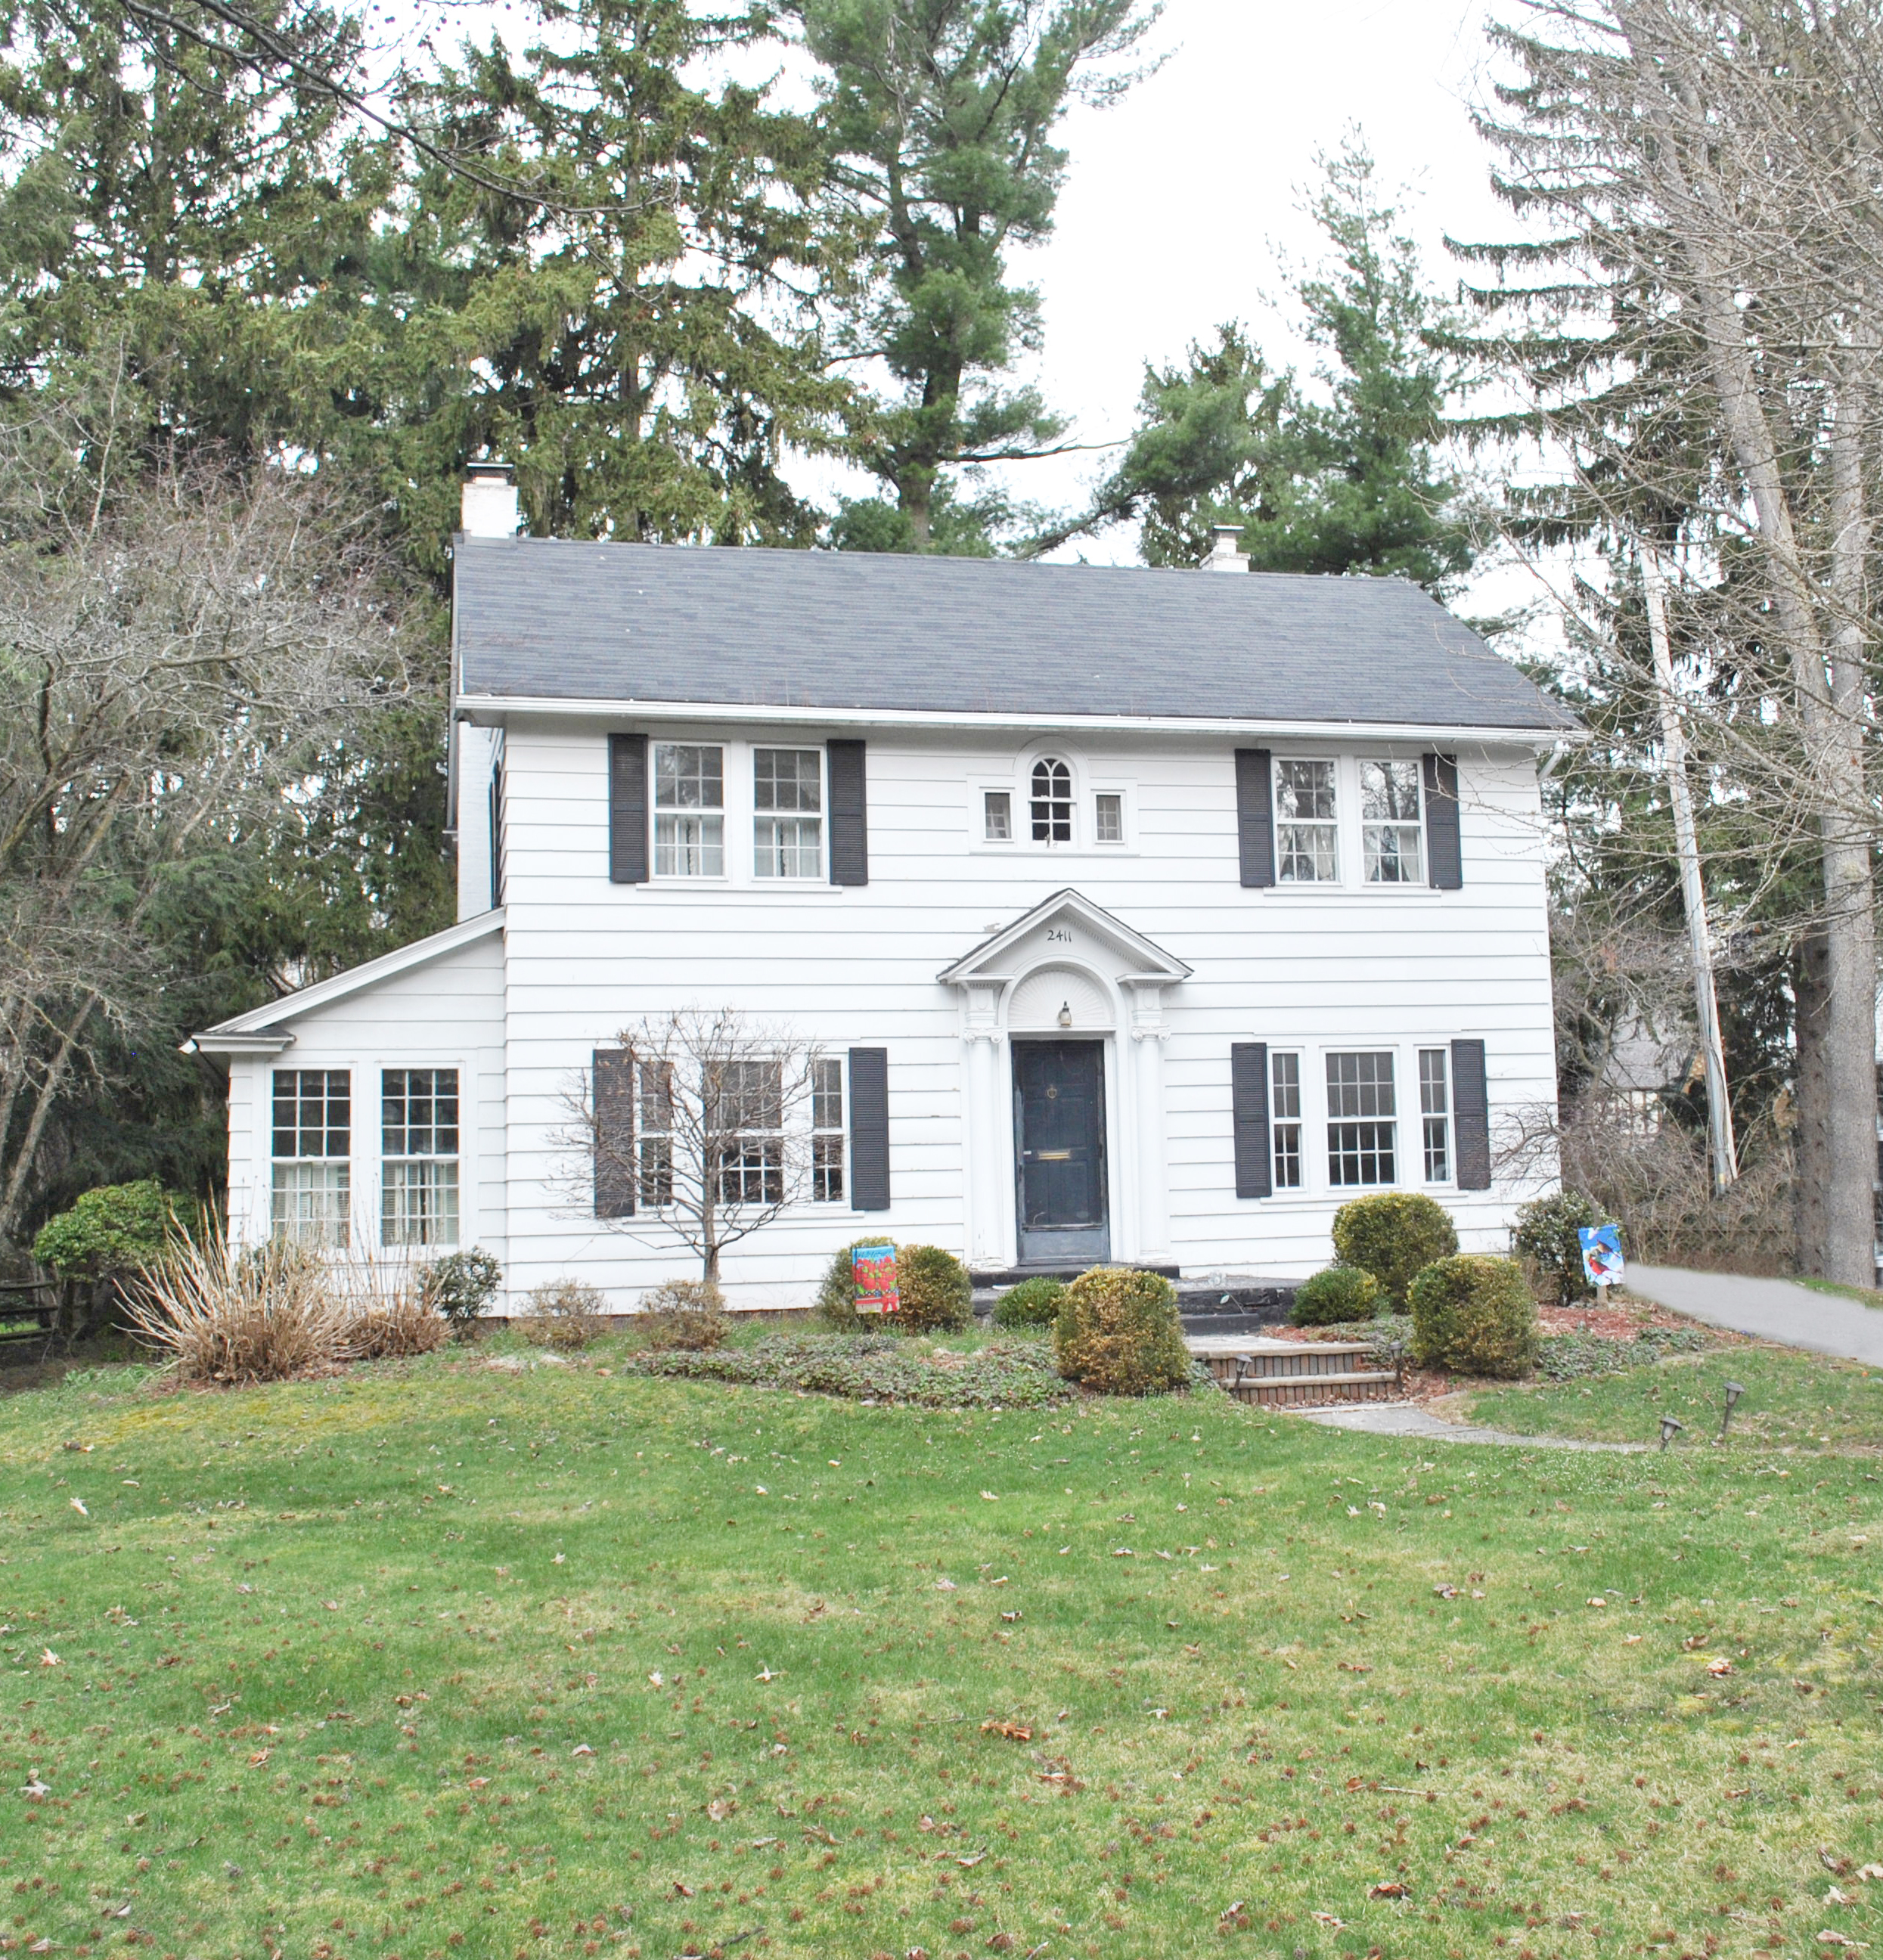 2411 Evergreen Rd Toledo Ohio 43606 Beth Rose Real Estate And Auctions Luxury Home Auctioneers